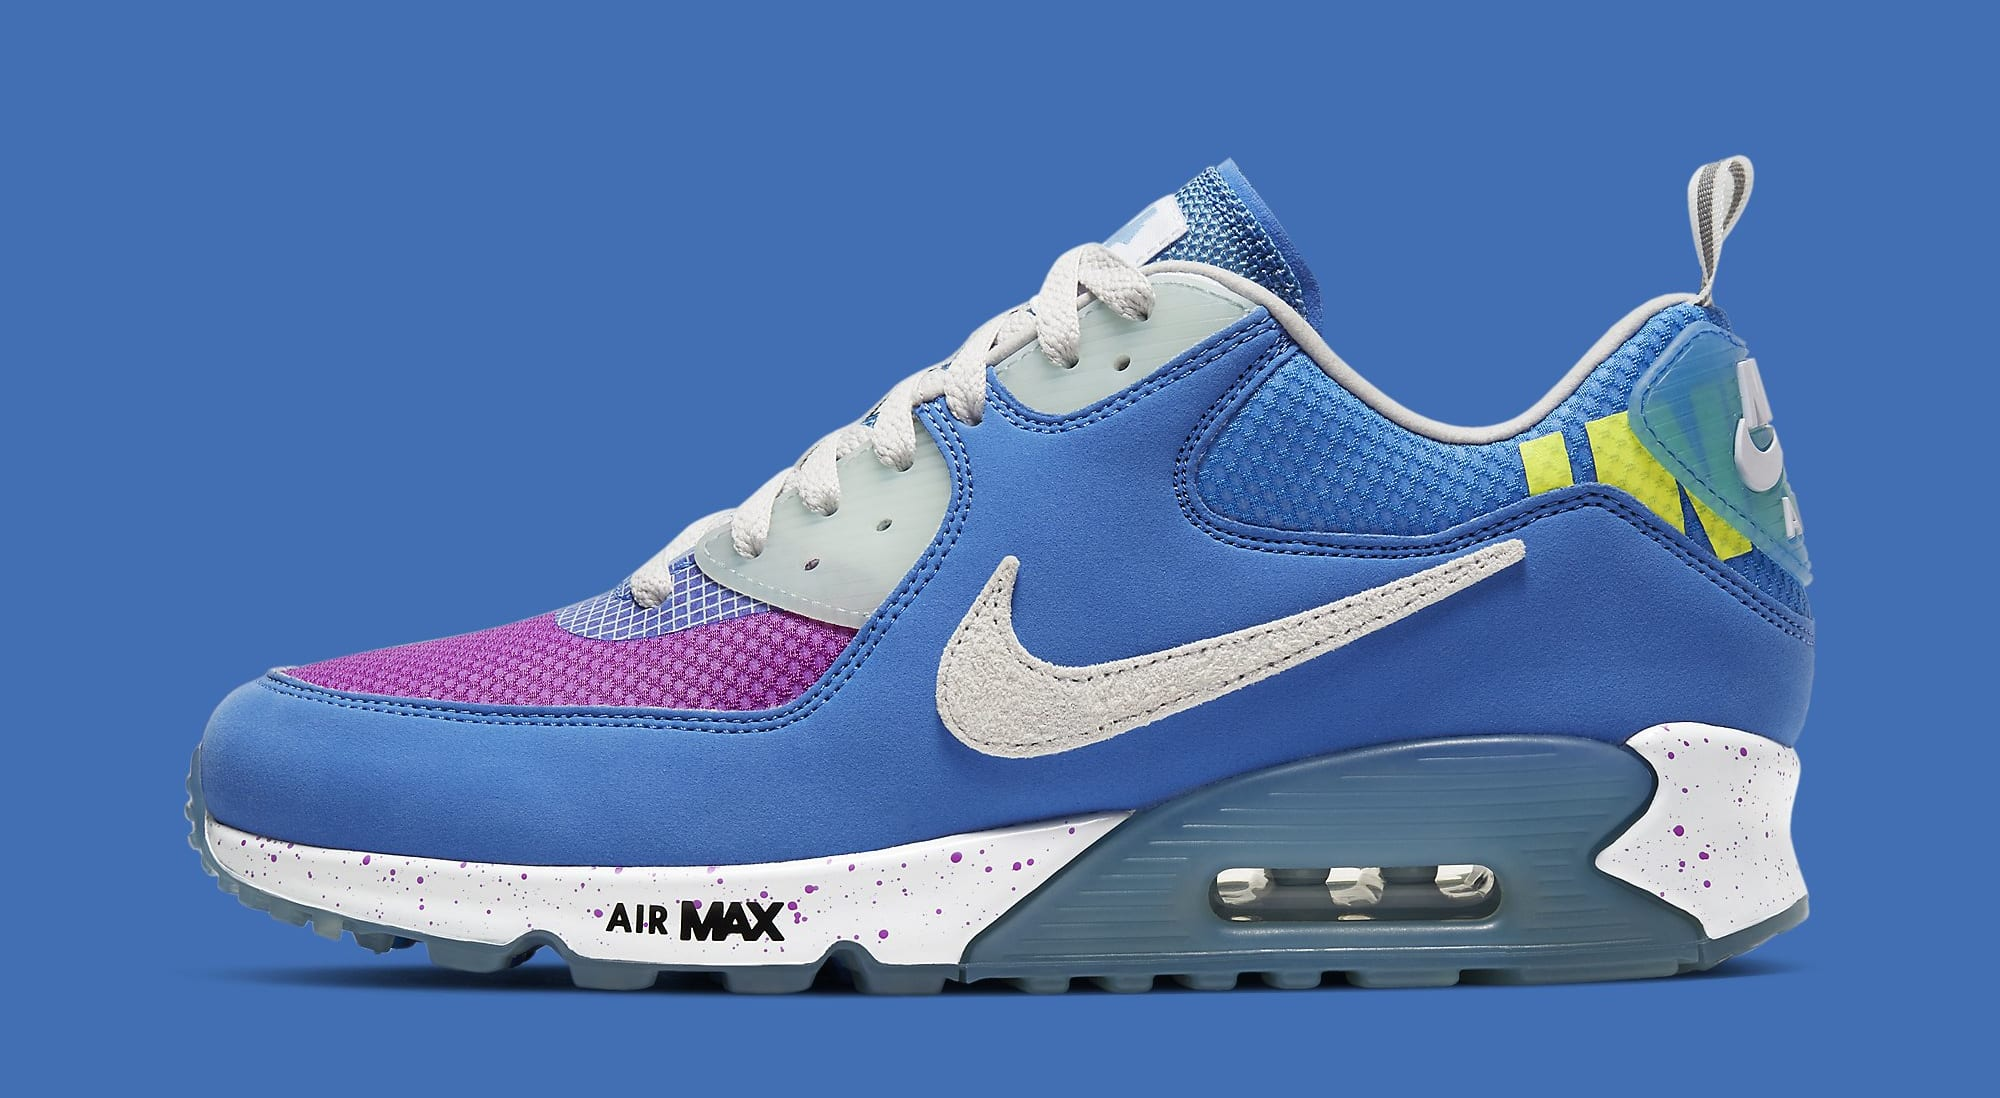 undefeated-nike-air-max-90-pacific-blue-cq2289-400-lateral